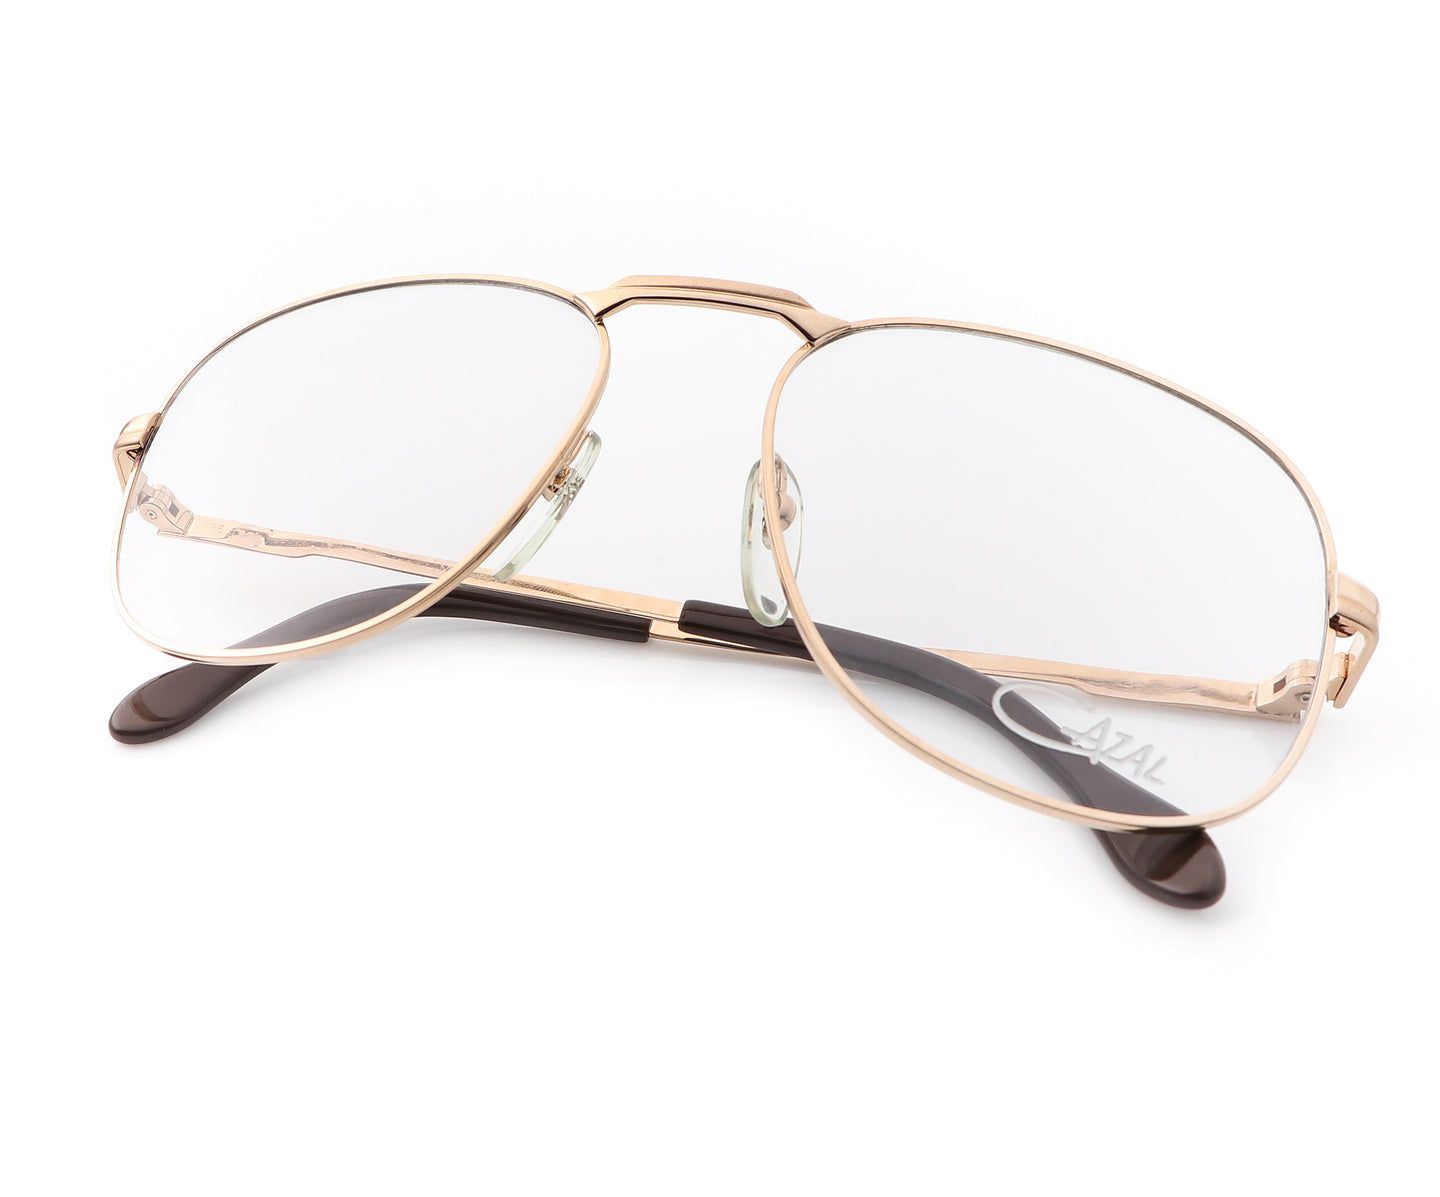 Cazal 707 77, Cazal , glasses frames, eyeglasses online, eyeglass frames, mens glasses, womens glasses, buy glasses online, designer eyeglasses, vintage sunglasses, retro sunglasses, vintage glasses, sunglass, eyeglass, glasses, lens, vintage frames company, vf